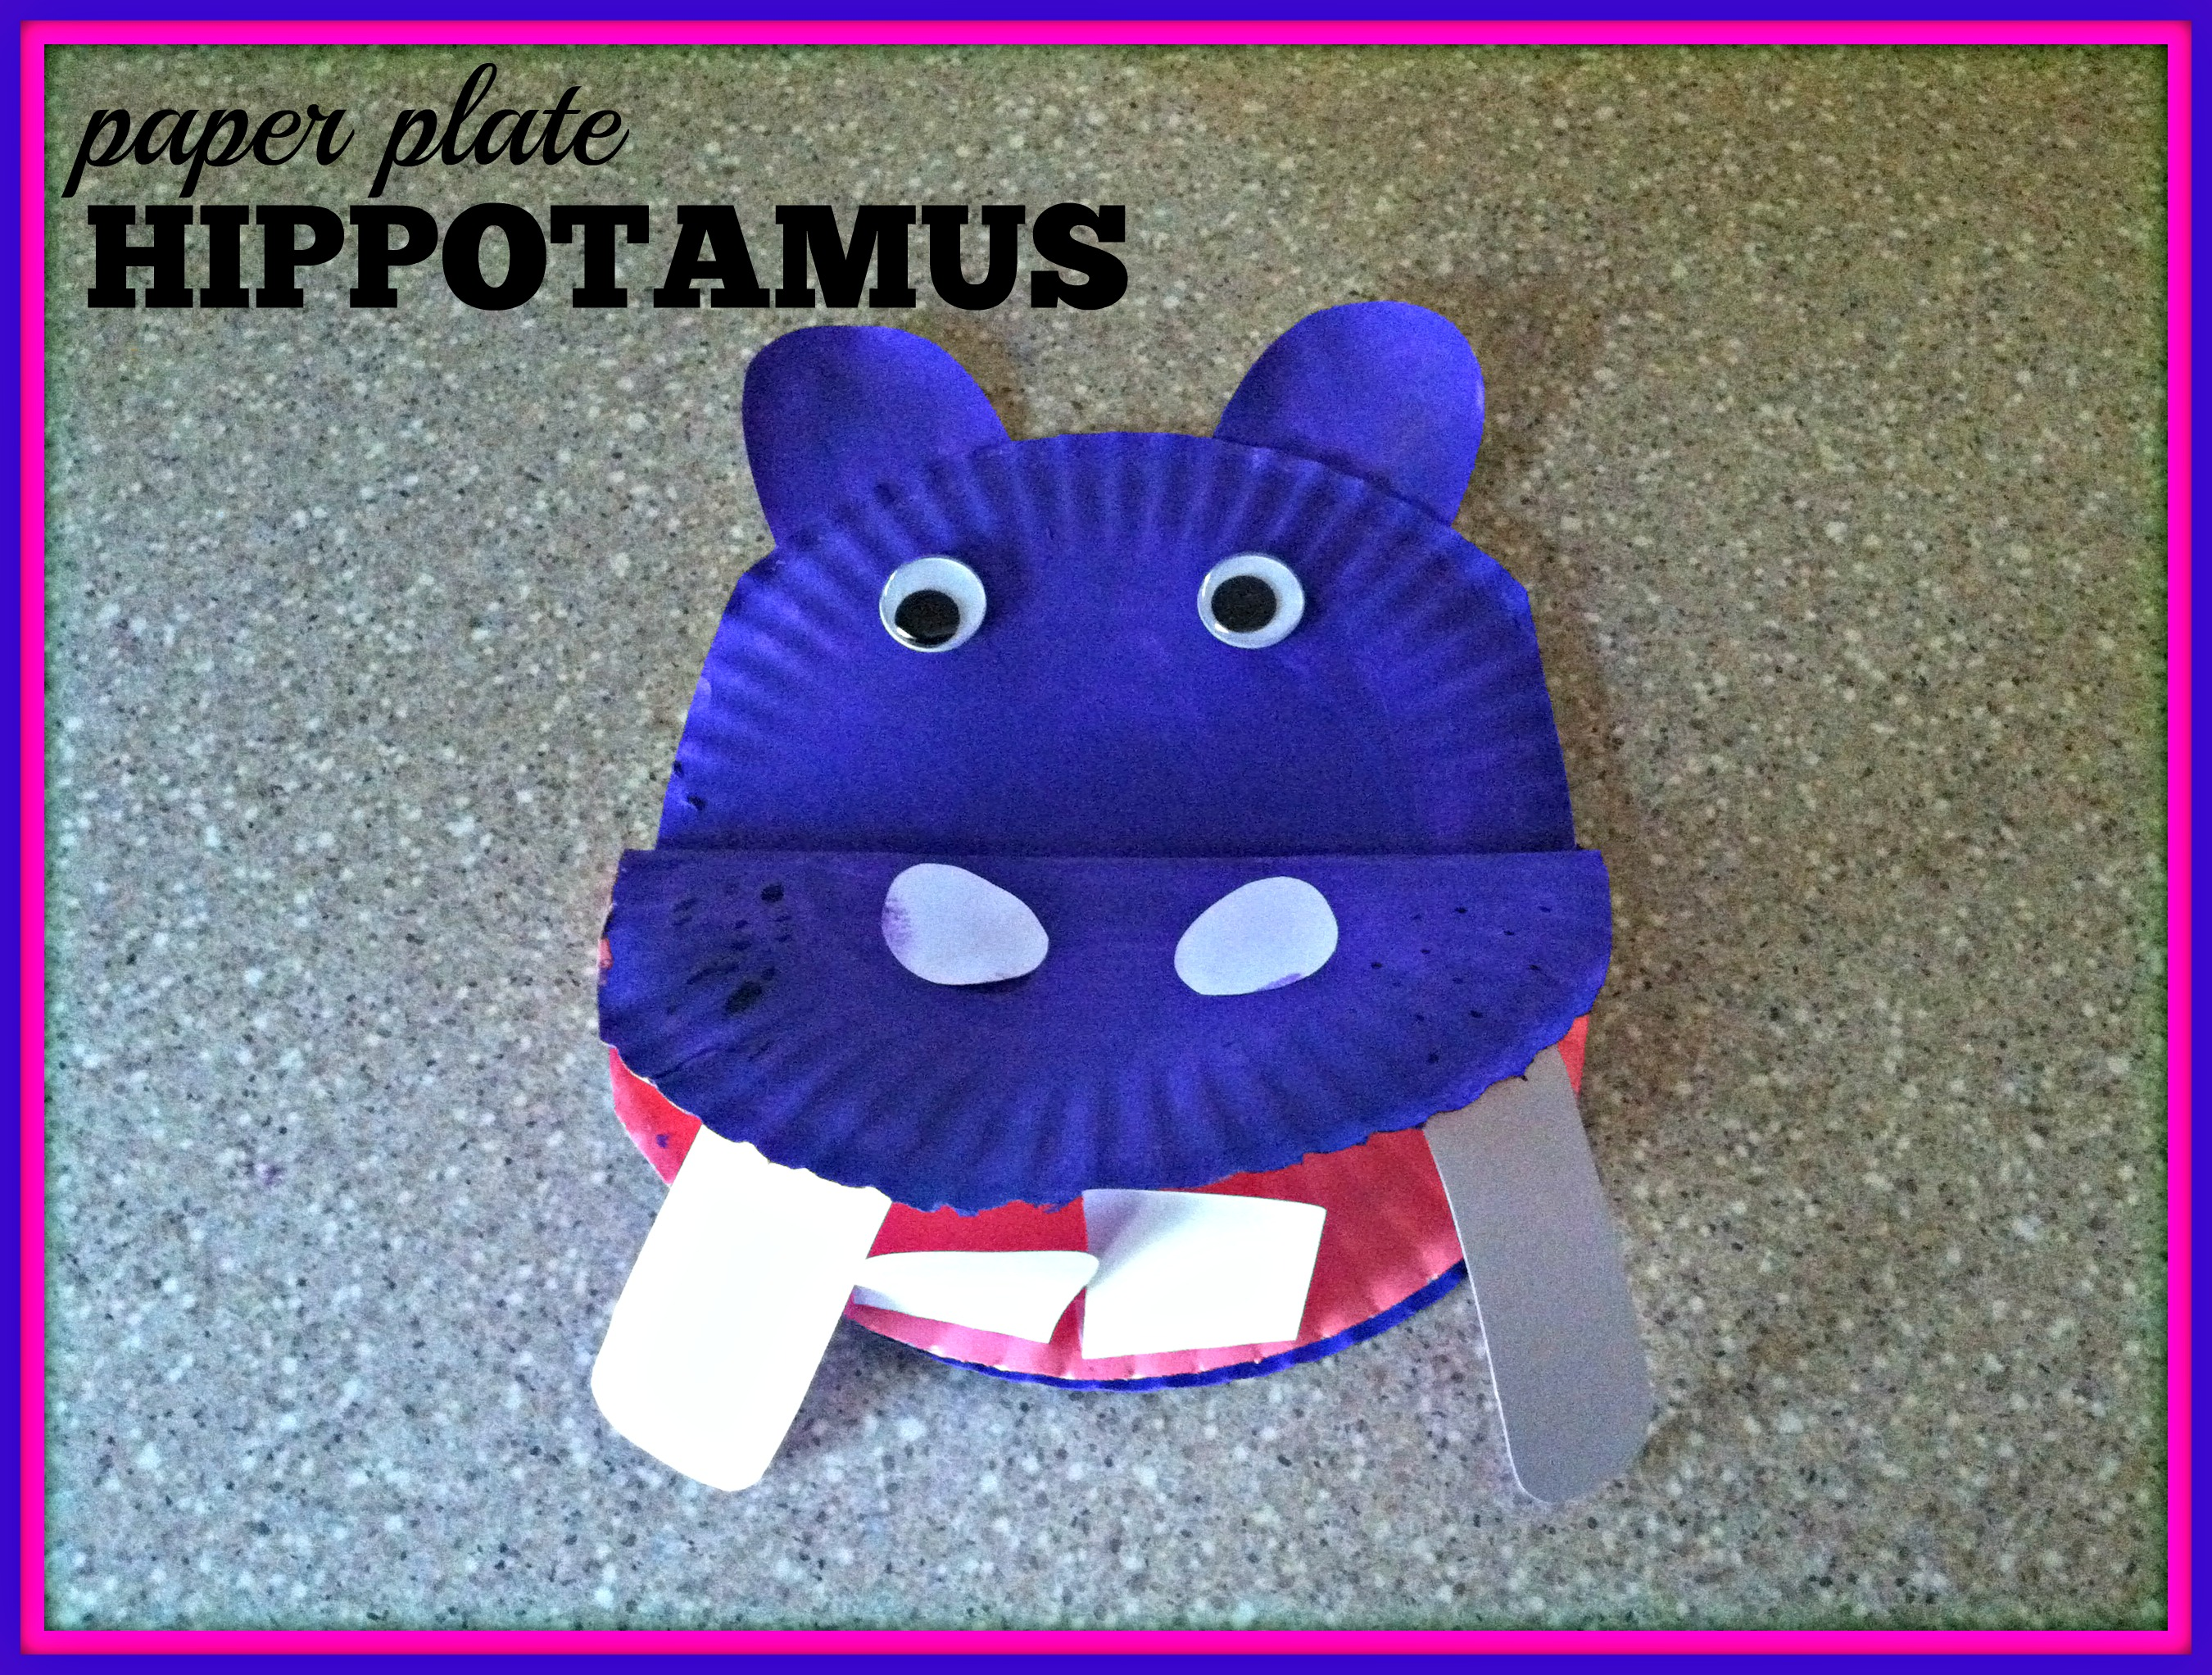 paper plate hippo & paper plates | Tidbit Times